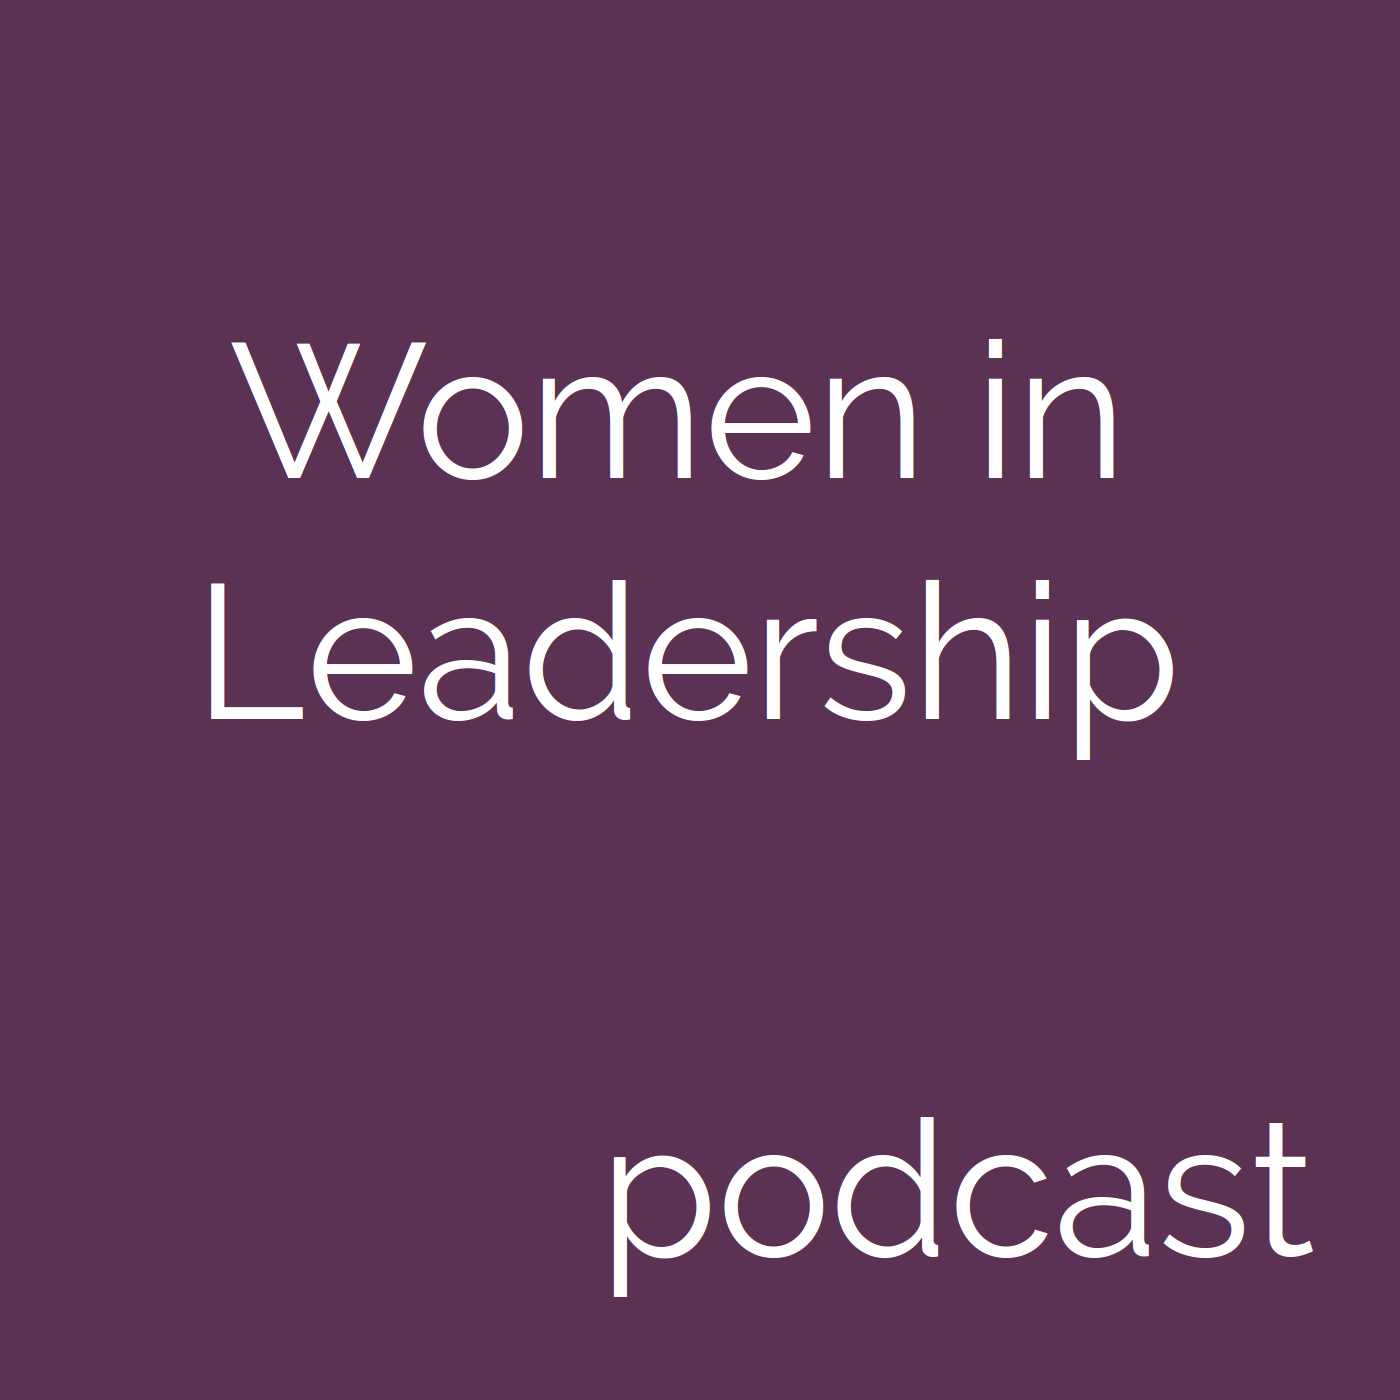 Women in Leadership podcast